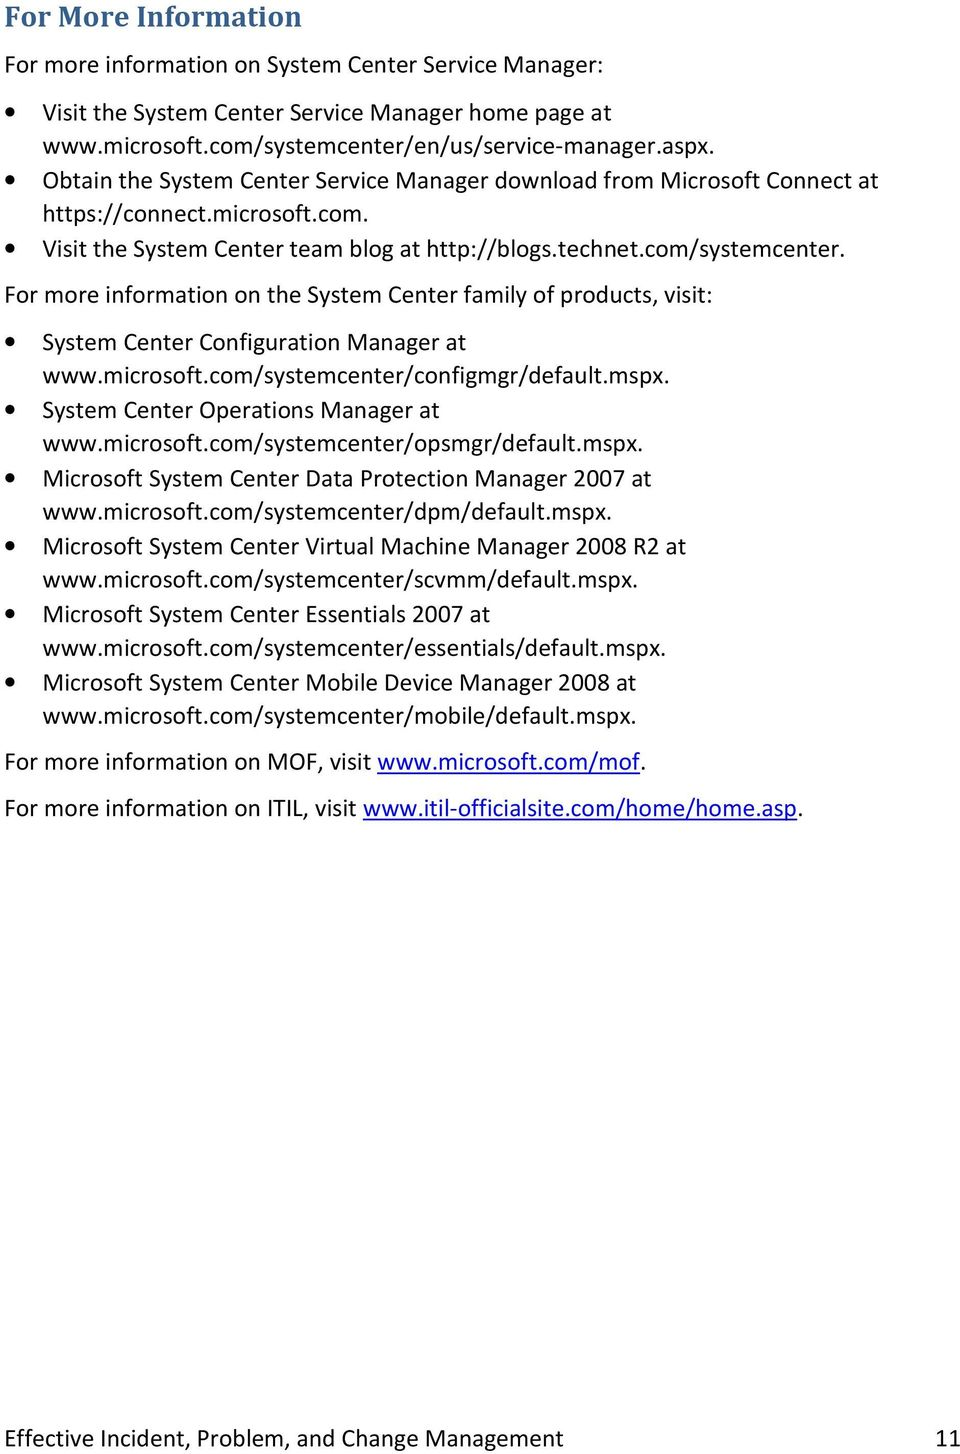 For more information on the System Center family of products, visit: System Center Configuration Manager at www.microsoft.com/systemcenter/configmgr/default.mspx.